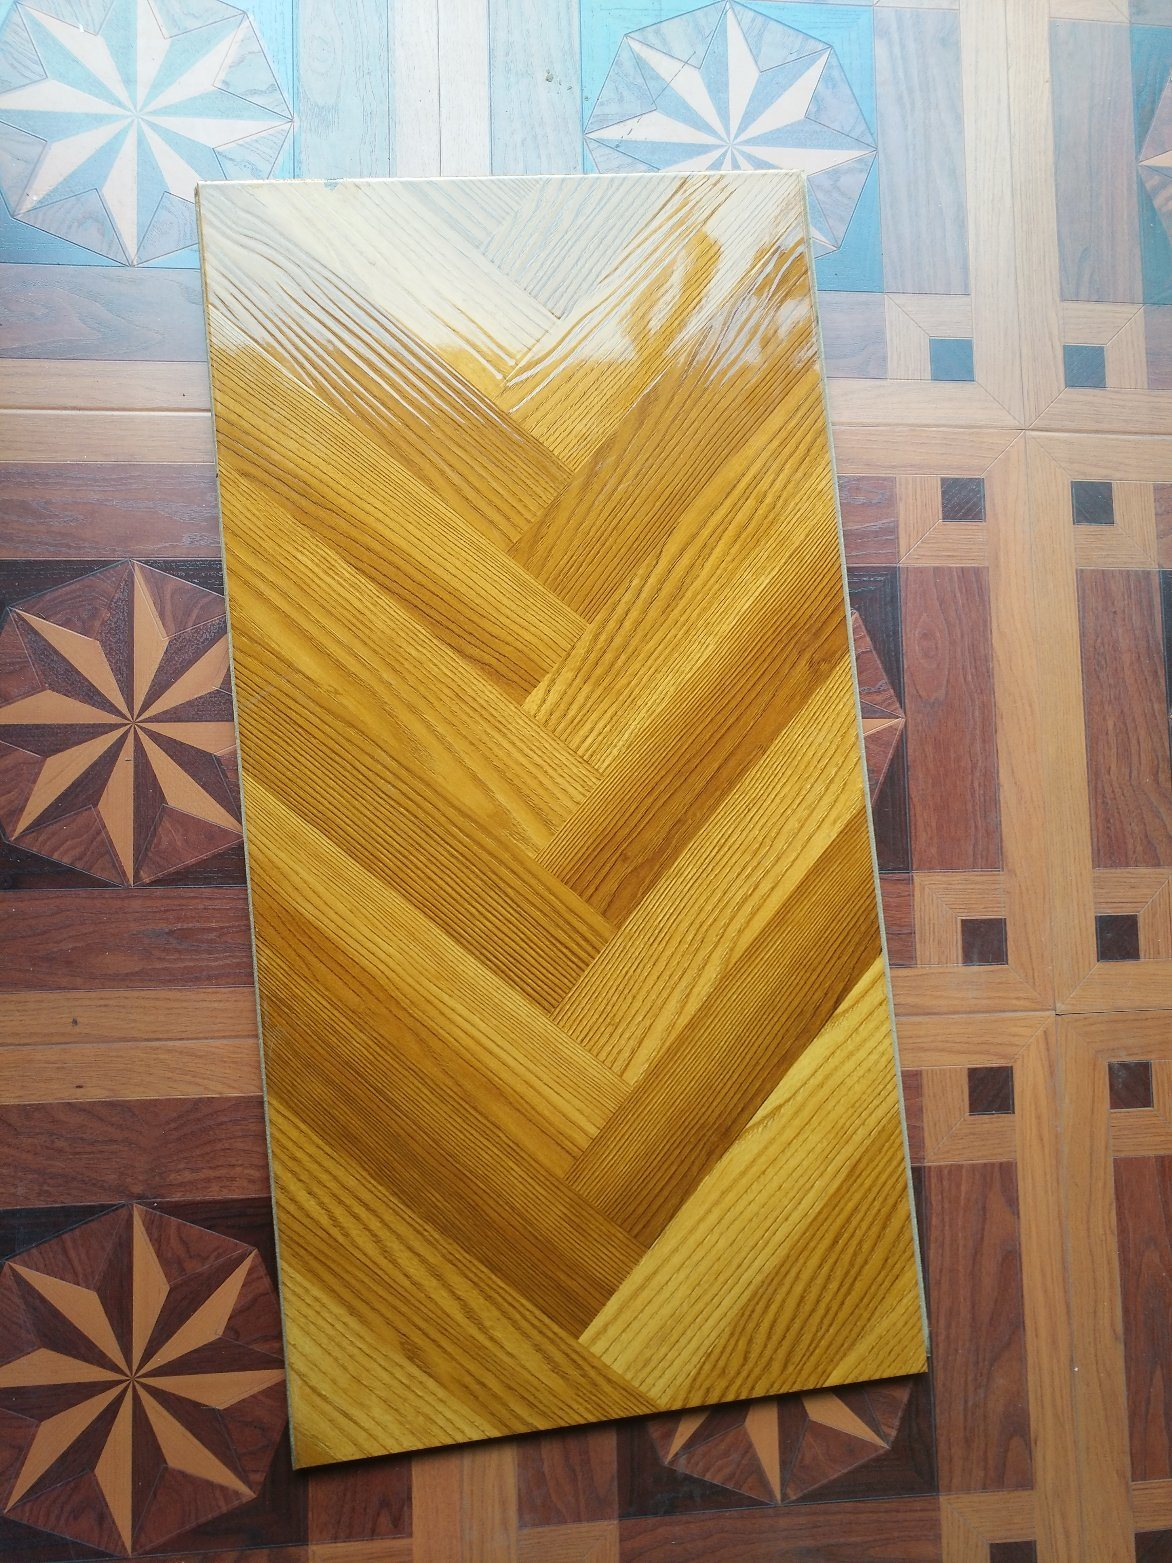 Laminate Flooring Parquets Series pictures & photos